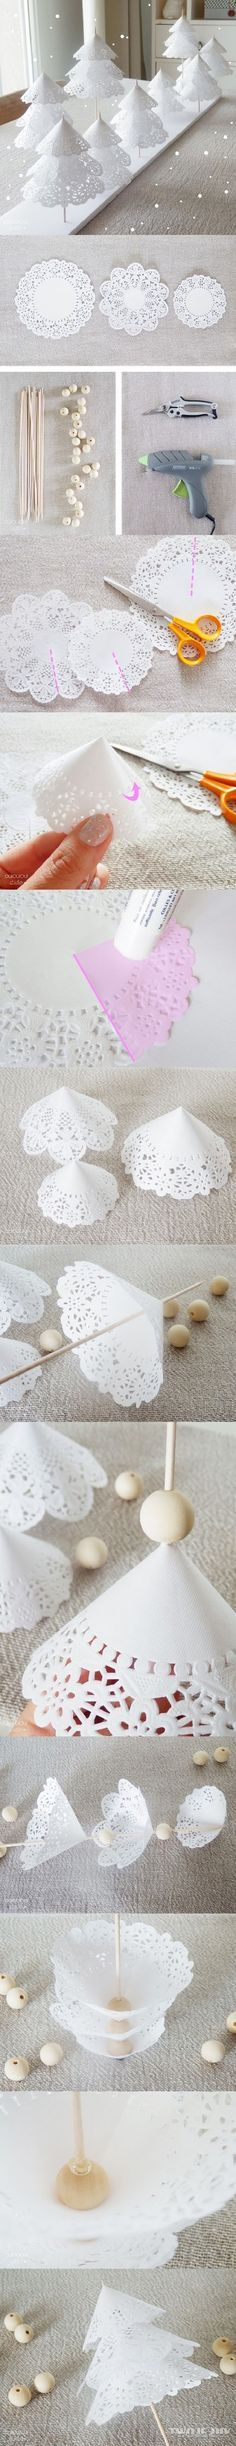 could also use circles of scrapbook paper? 25 Adorable Christmas Projects that you can do! I love these paper doilies Christmas trees and they are super easy to make. Cute centerpiece idea!